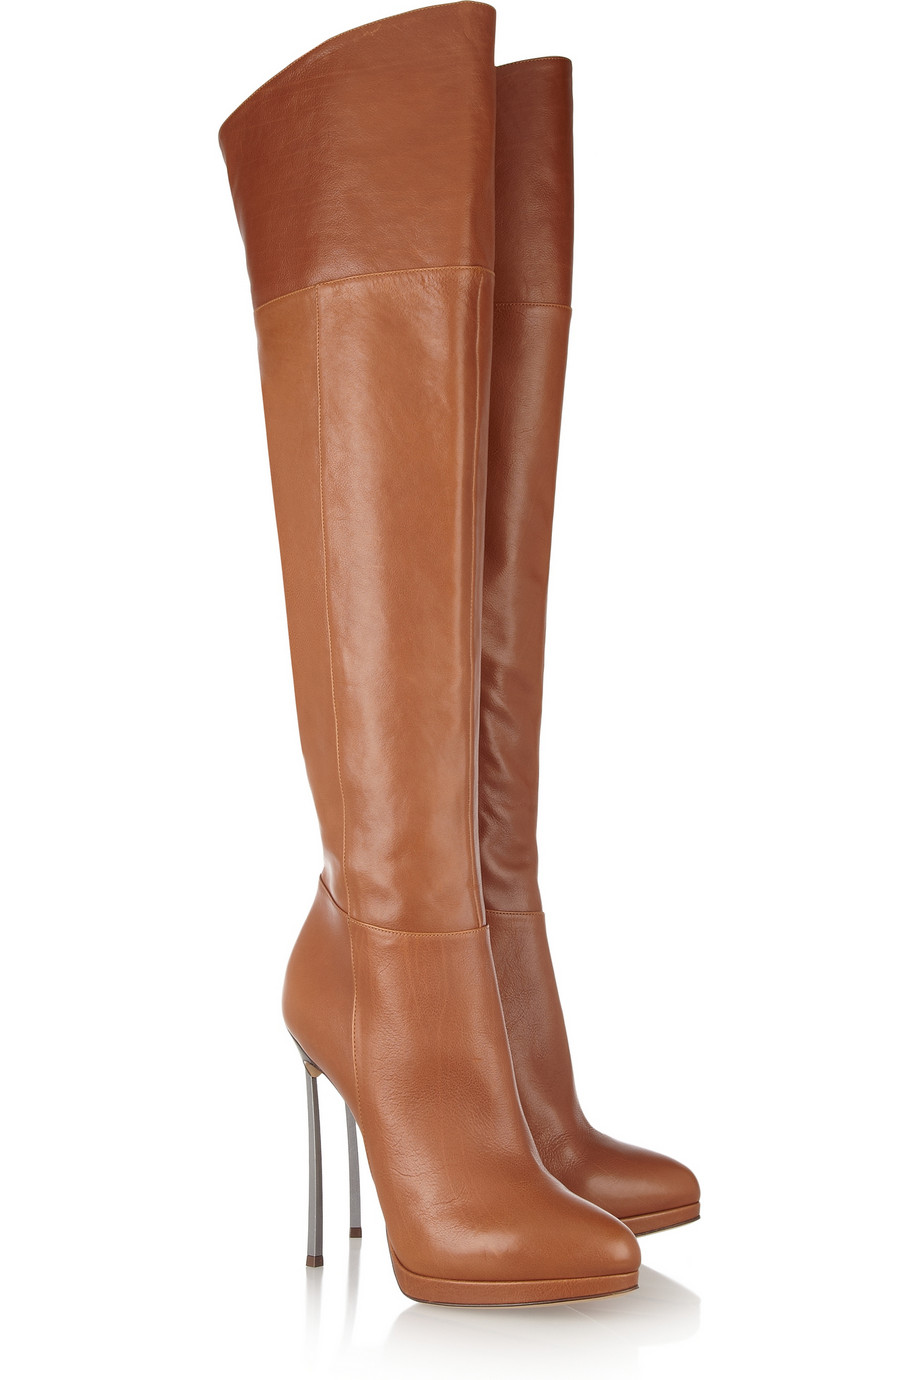 shoeniverse casadei tan leather thigh boots. Black Bedroom Furniture Sets. Home Design Ideas